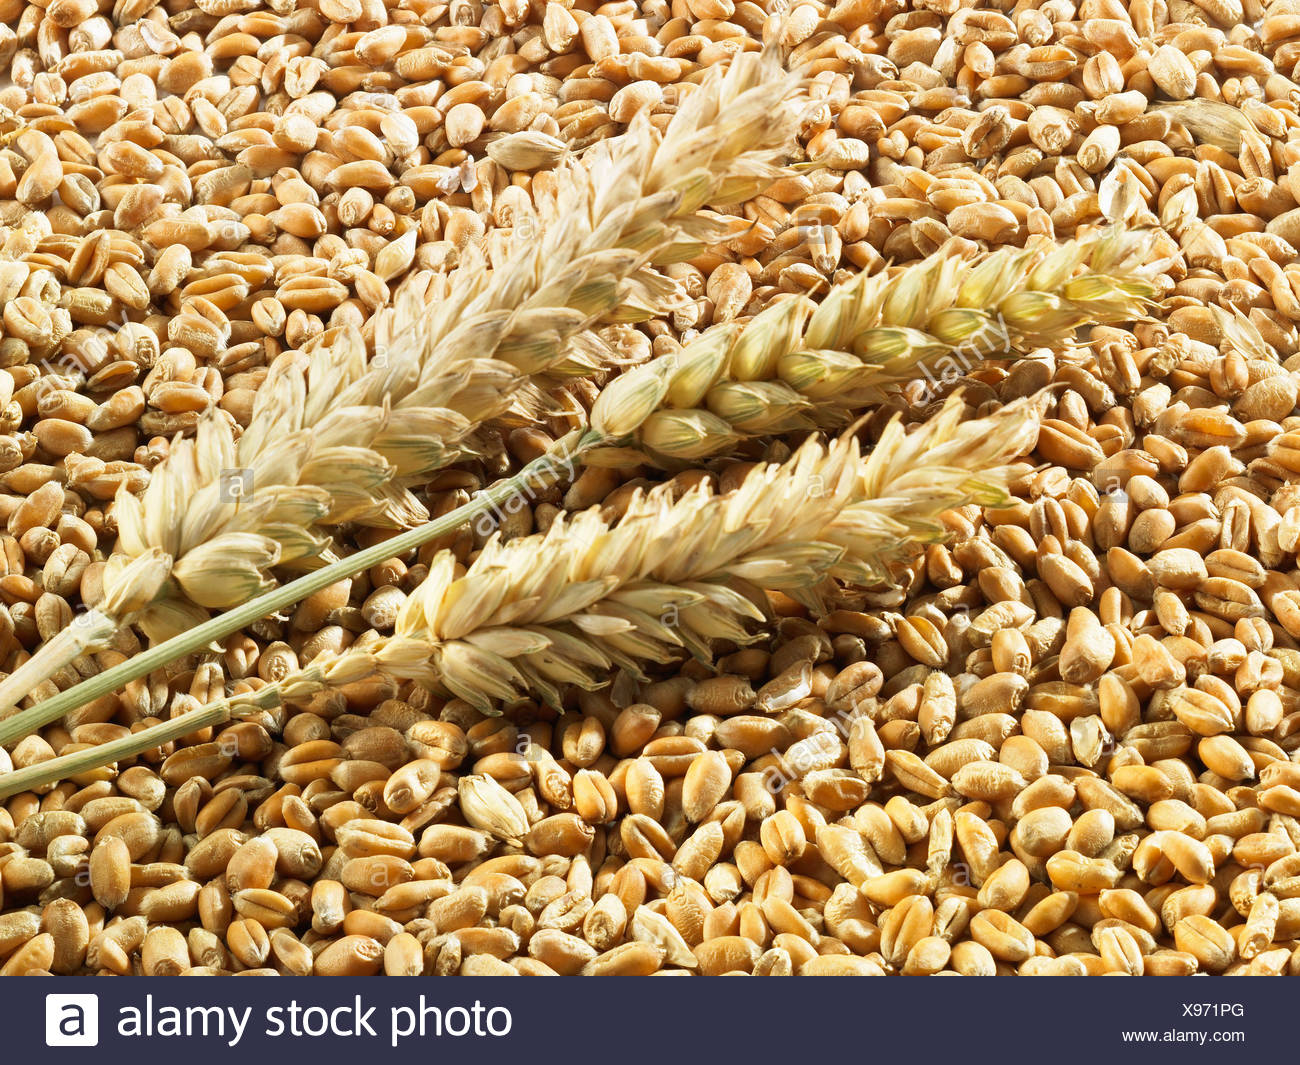 Wheat grains and ears - Stock Image